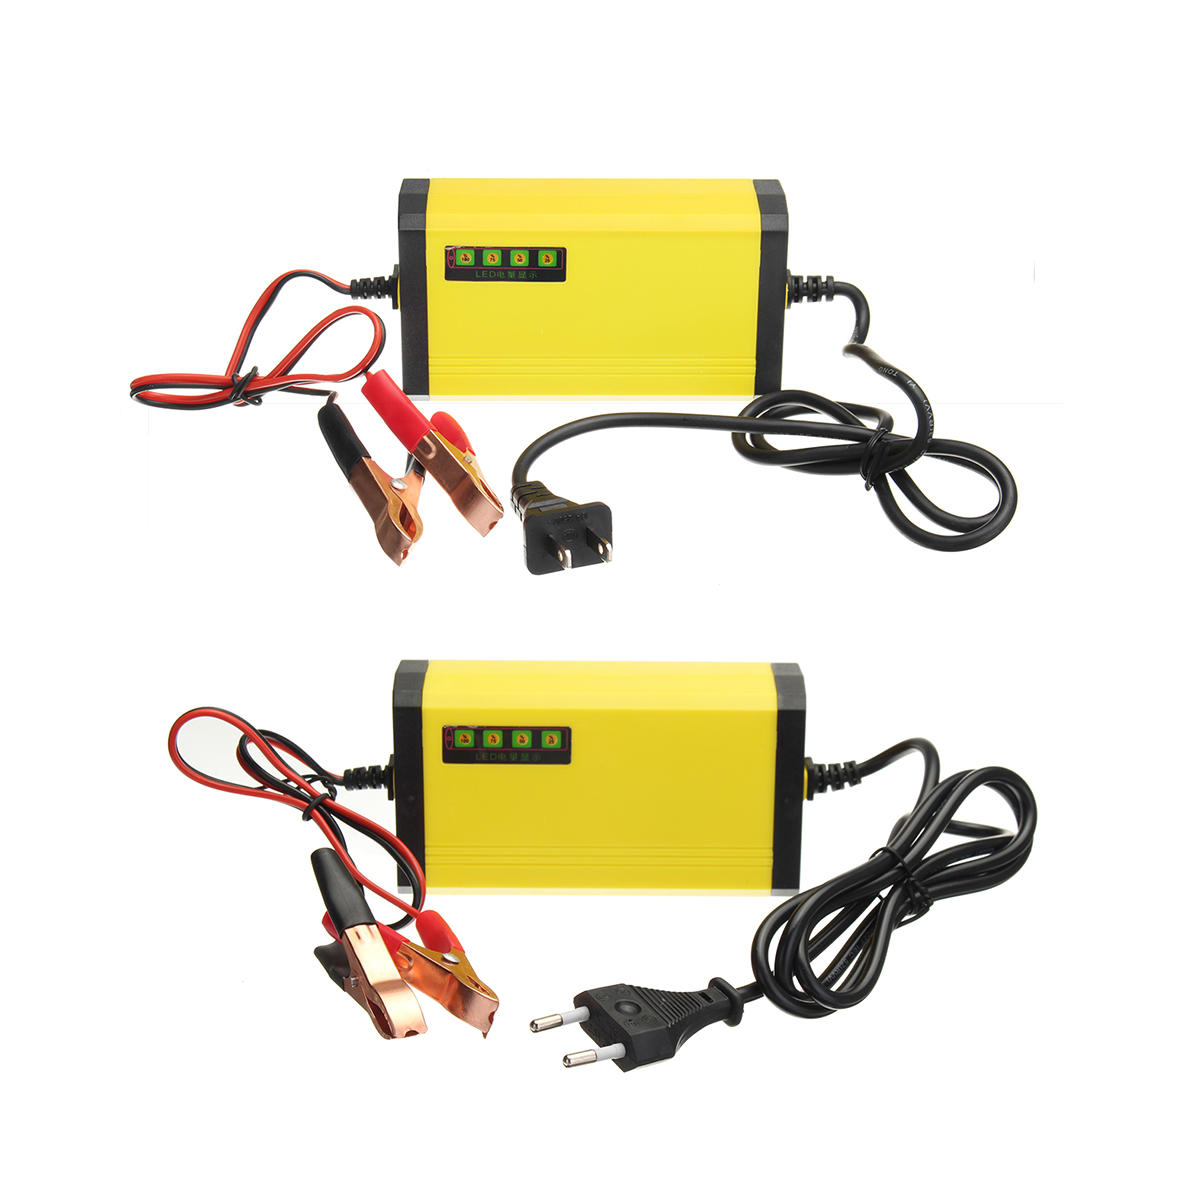 12V 2AH-20AH Smart Automatic ABS Batteria Caricabatterie US / EU Plug For Car Motorcycle